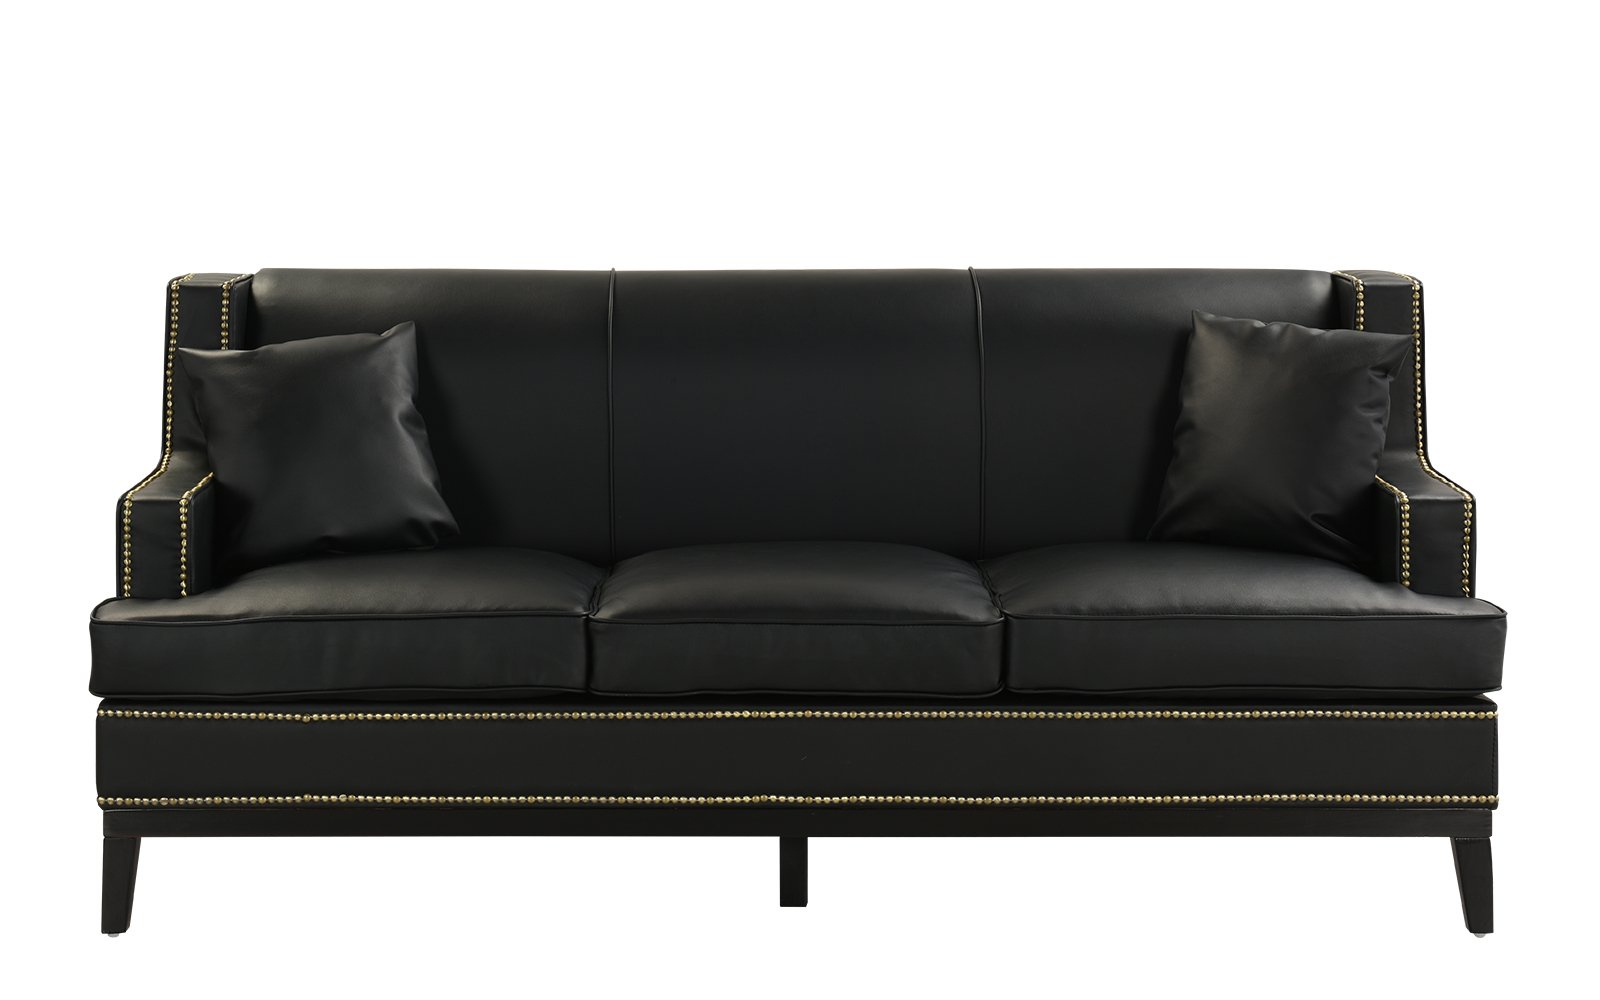 Black Modern Bonded Leather Sofa With Nailhead Trim Detail Throughout Bonded Leather All In One Sectional Sofas With Ottoman And 2 Pillows Brown (View 14 of 15)